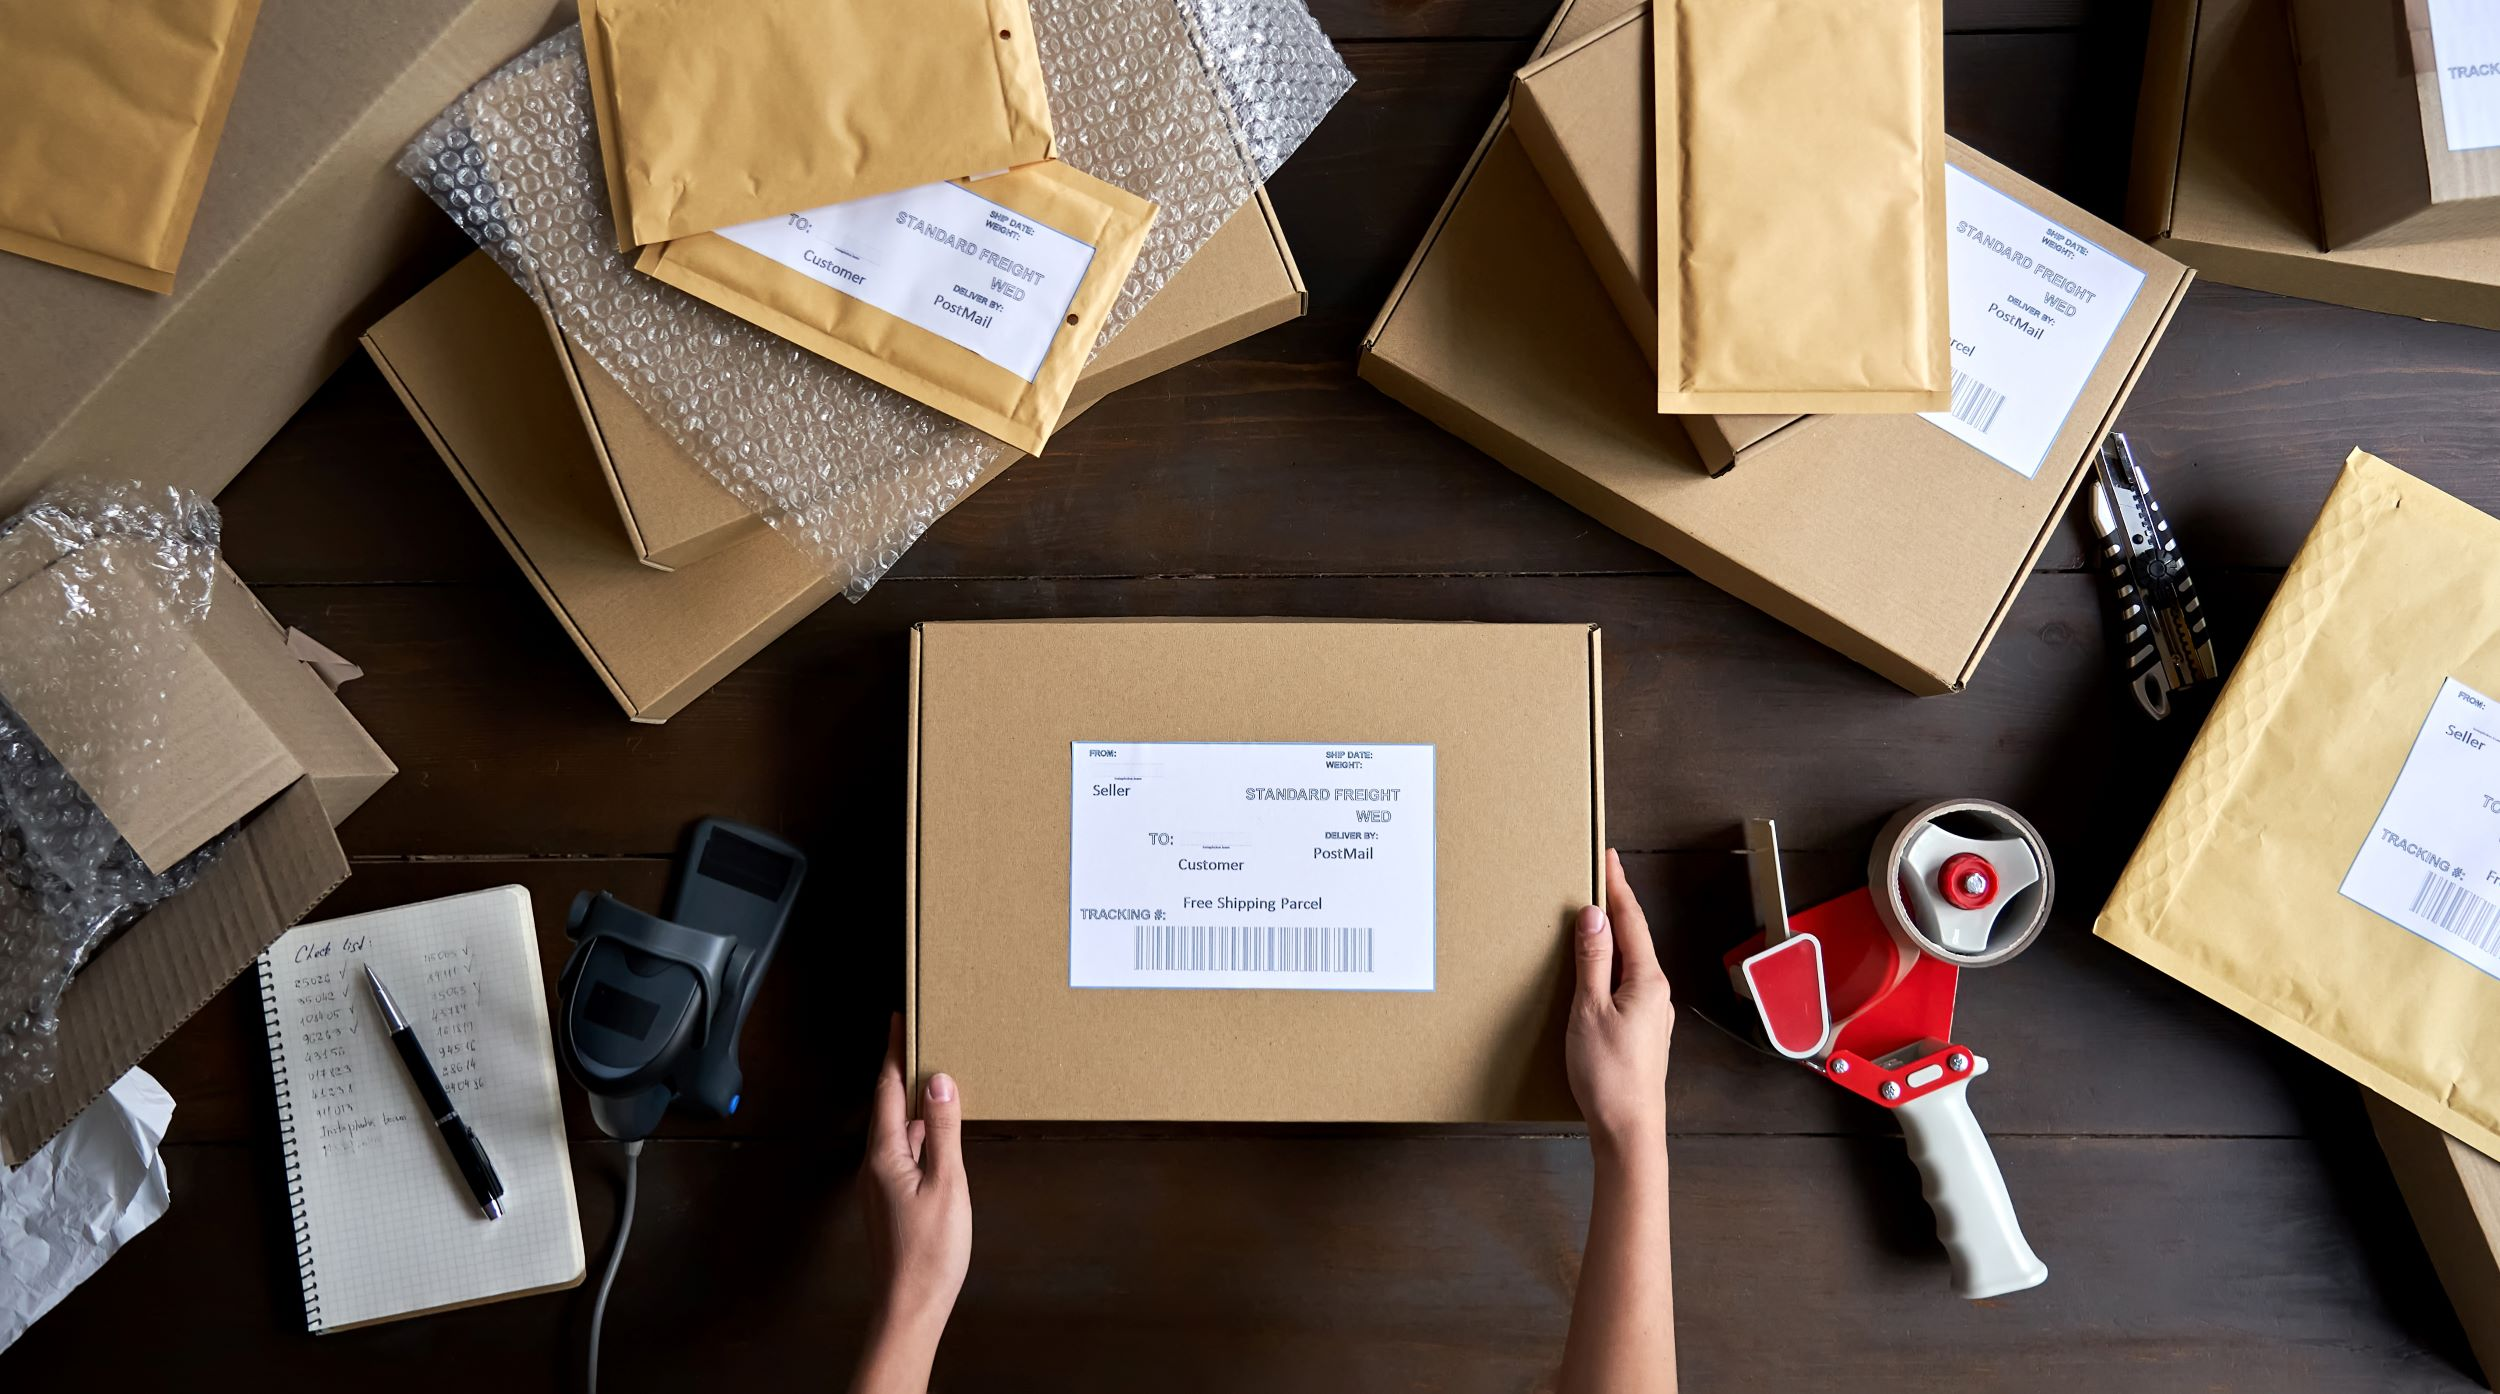 An ecommerce business owner prepares orders for shipping